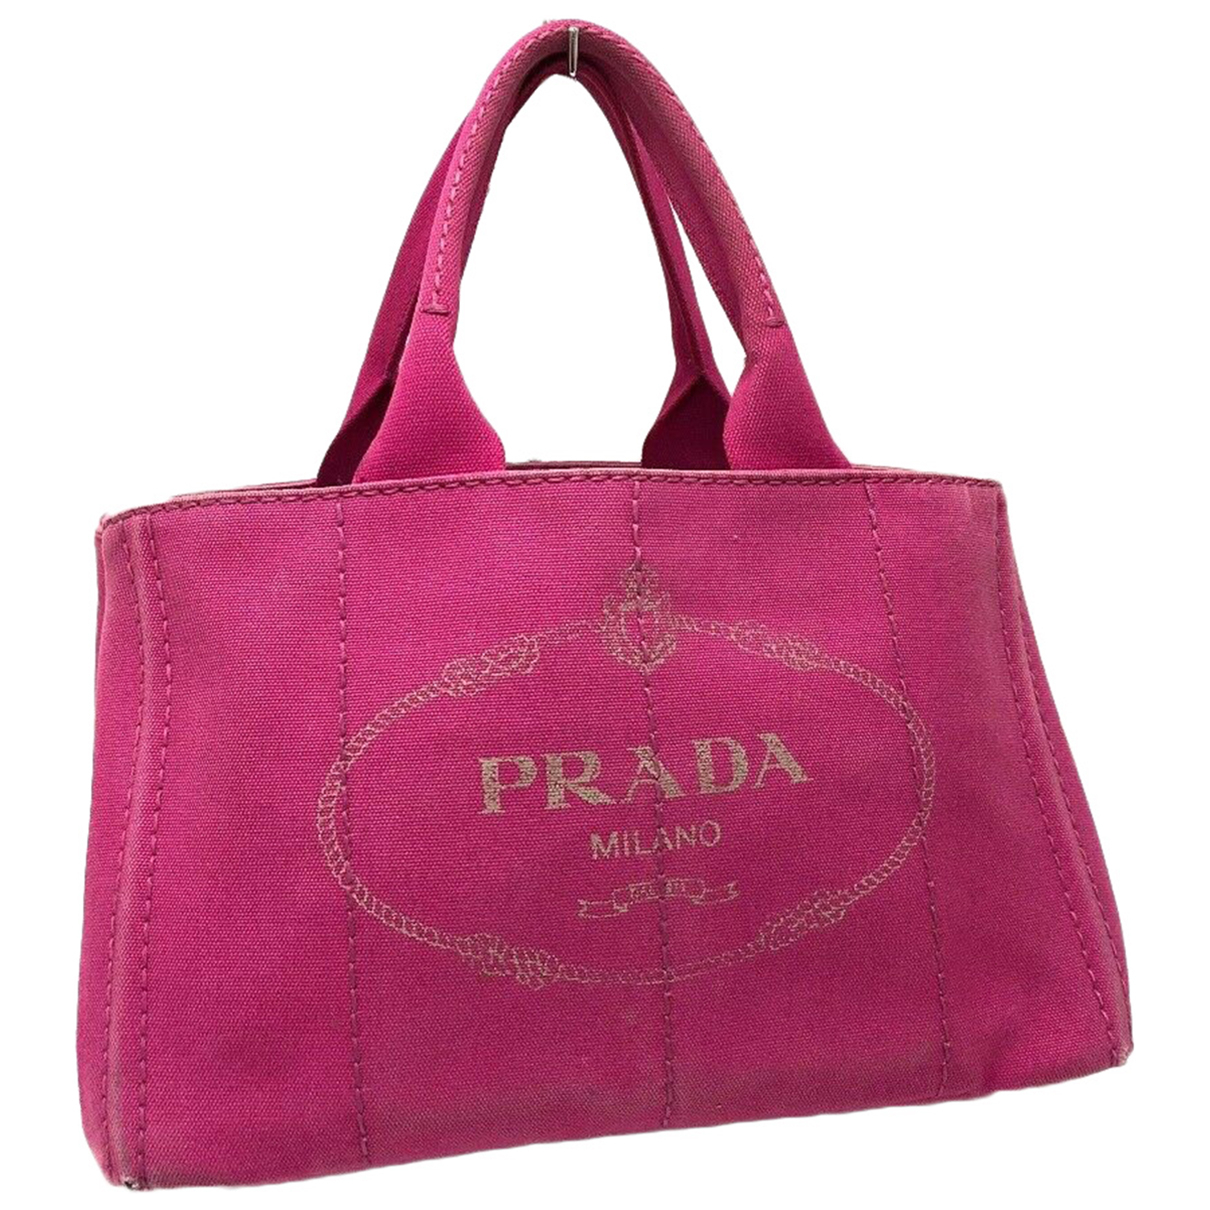 Prada N Pink Cloth handbag for Women N